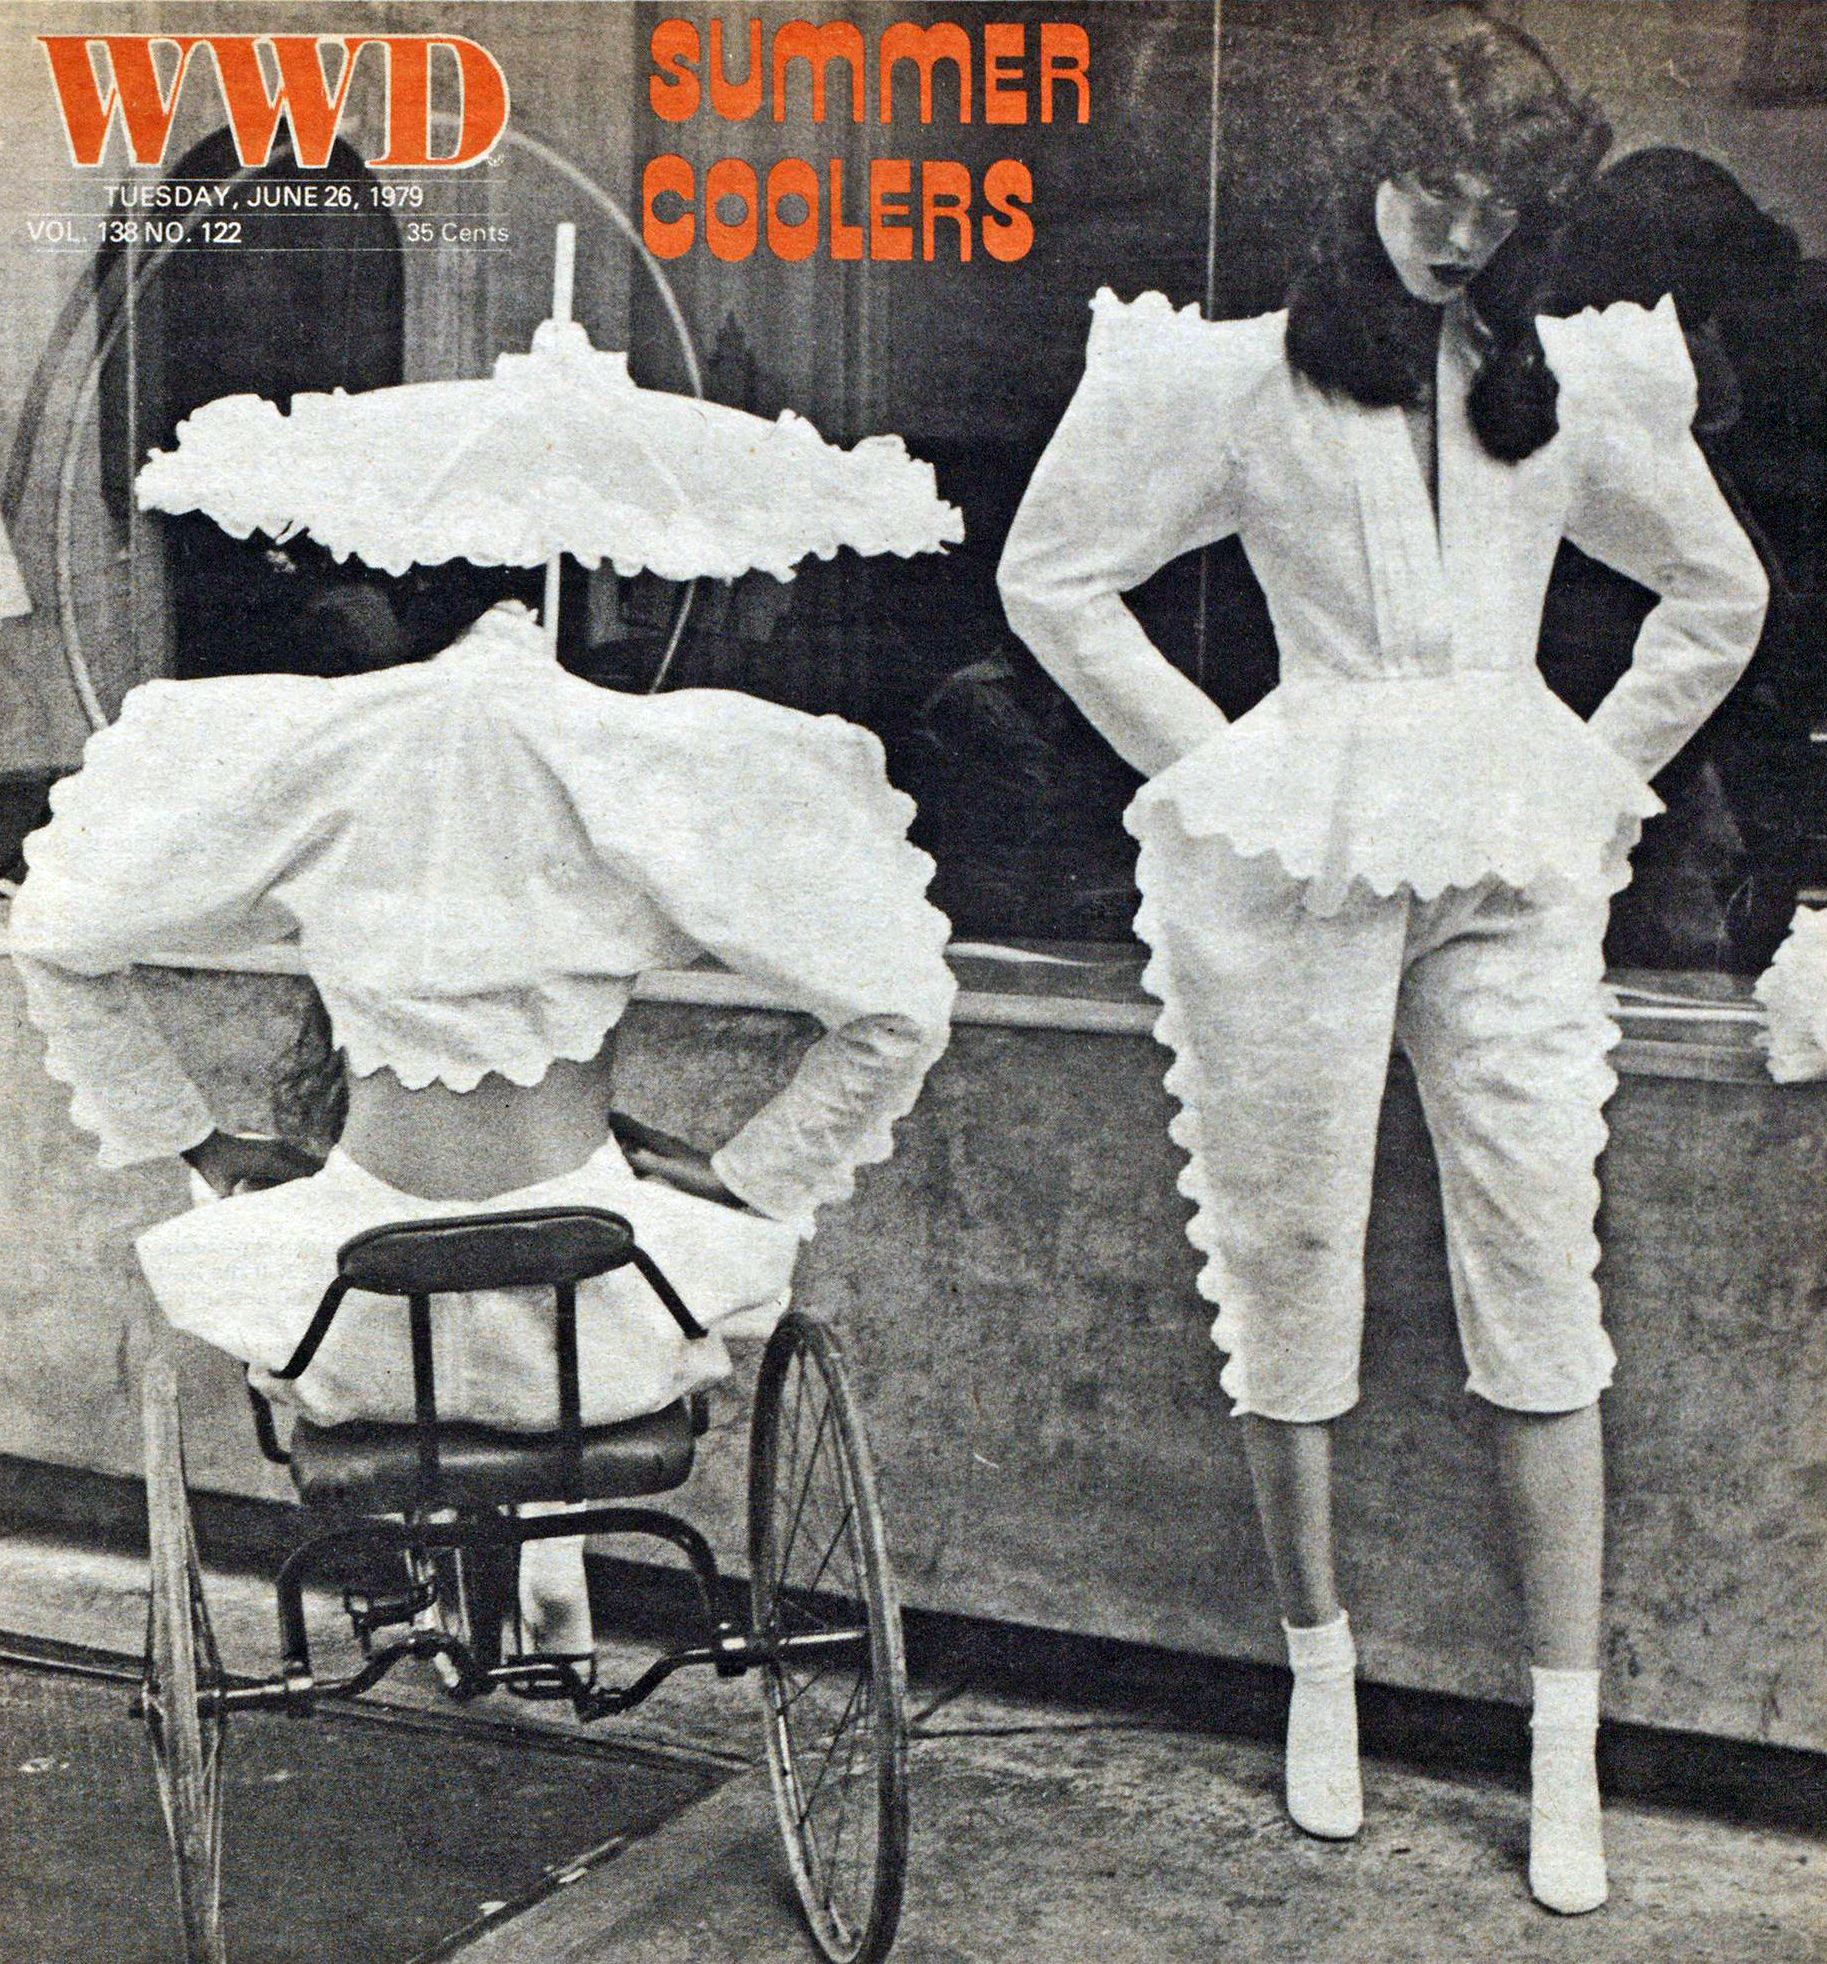 Norma Kamali's white cotton eyelet jacket and knickers. WWD, June 26, 1979.